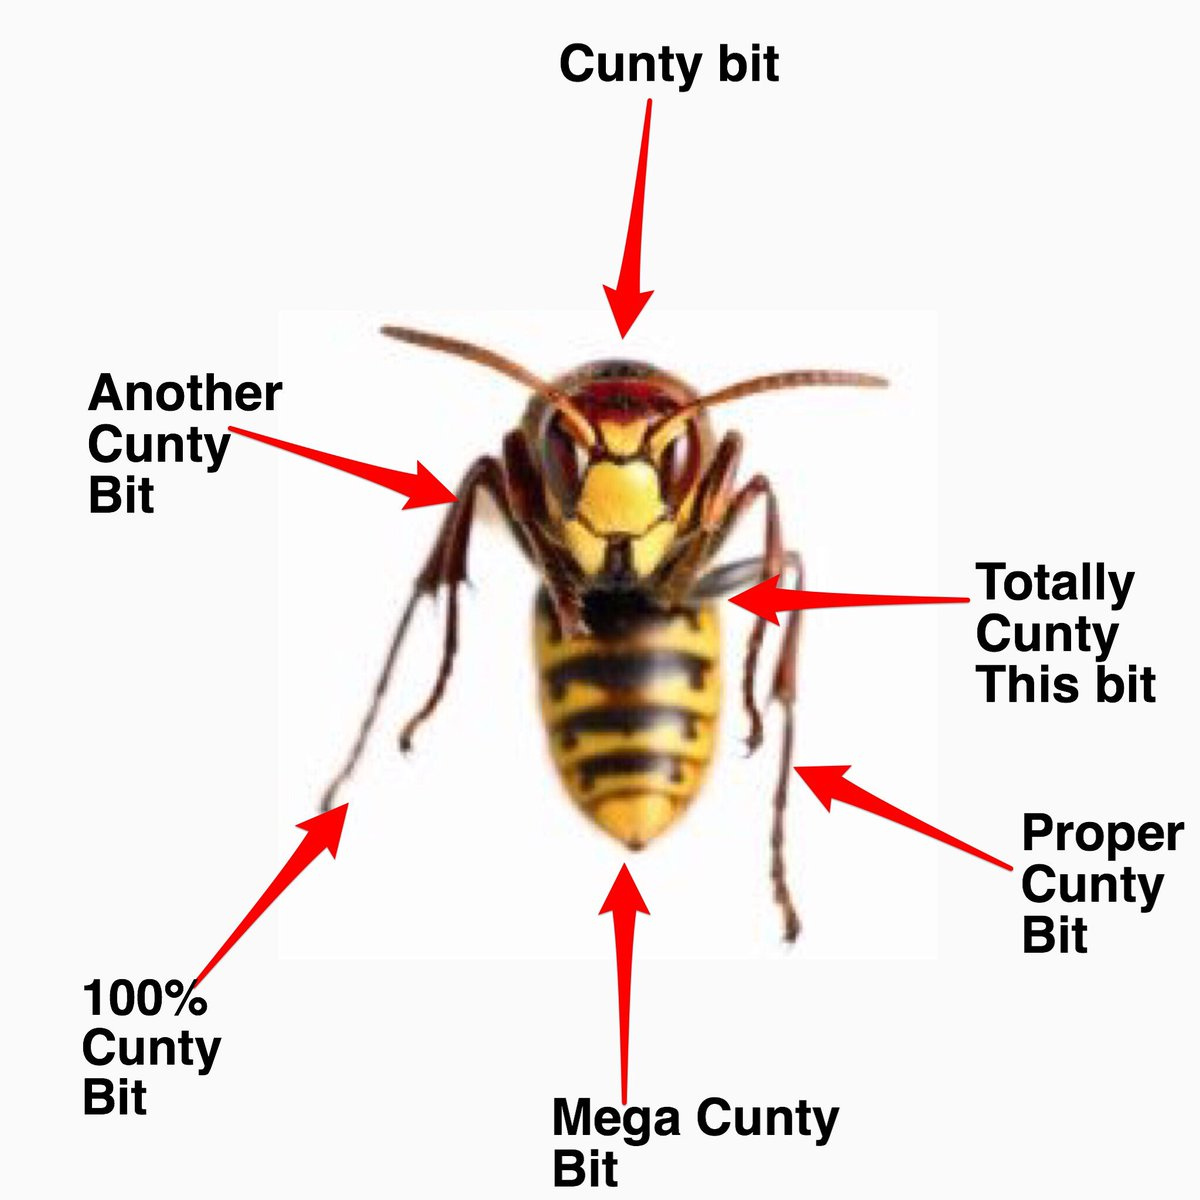 hornet anatomy diagram wiring leviton decora light dimmer switch joe heenan on twitter anatomical diagrams to explain the difference between a bee wasp https t co evn8gwrstq